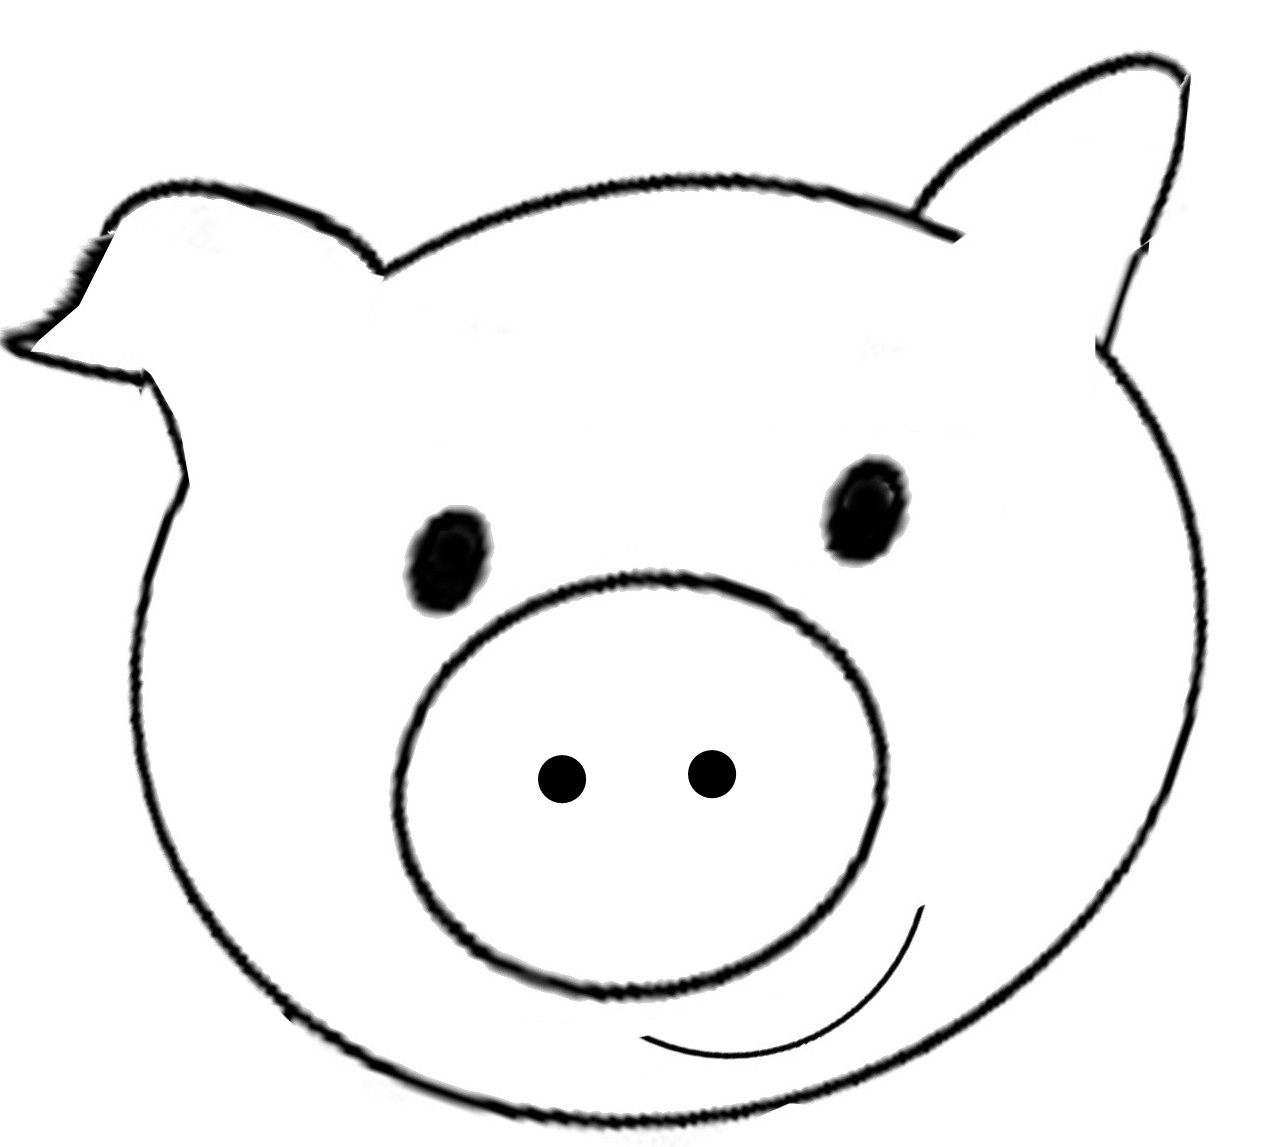 free printable pig template outline of a pig free download on clipartmag free pig template printable